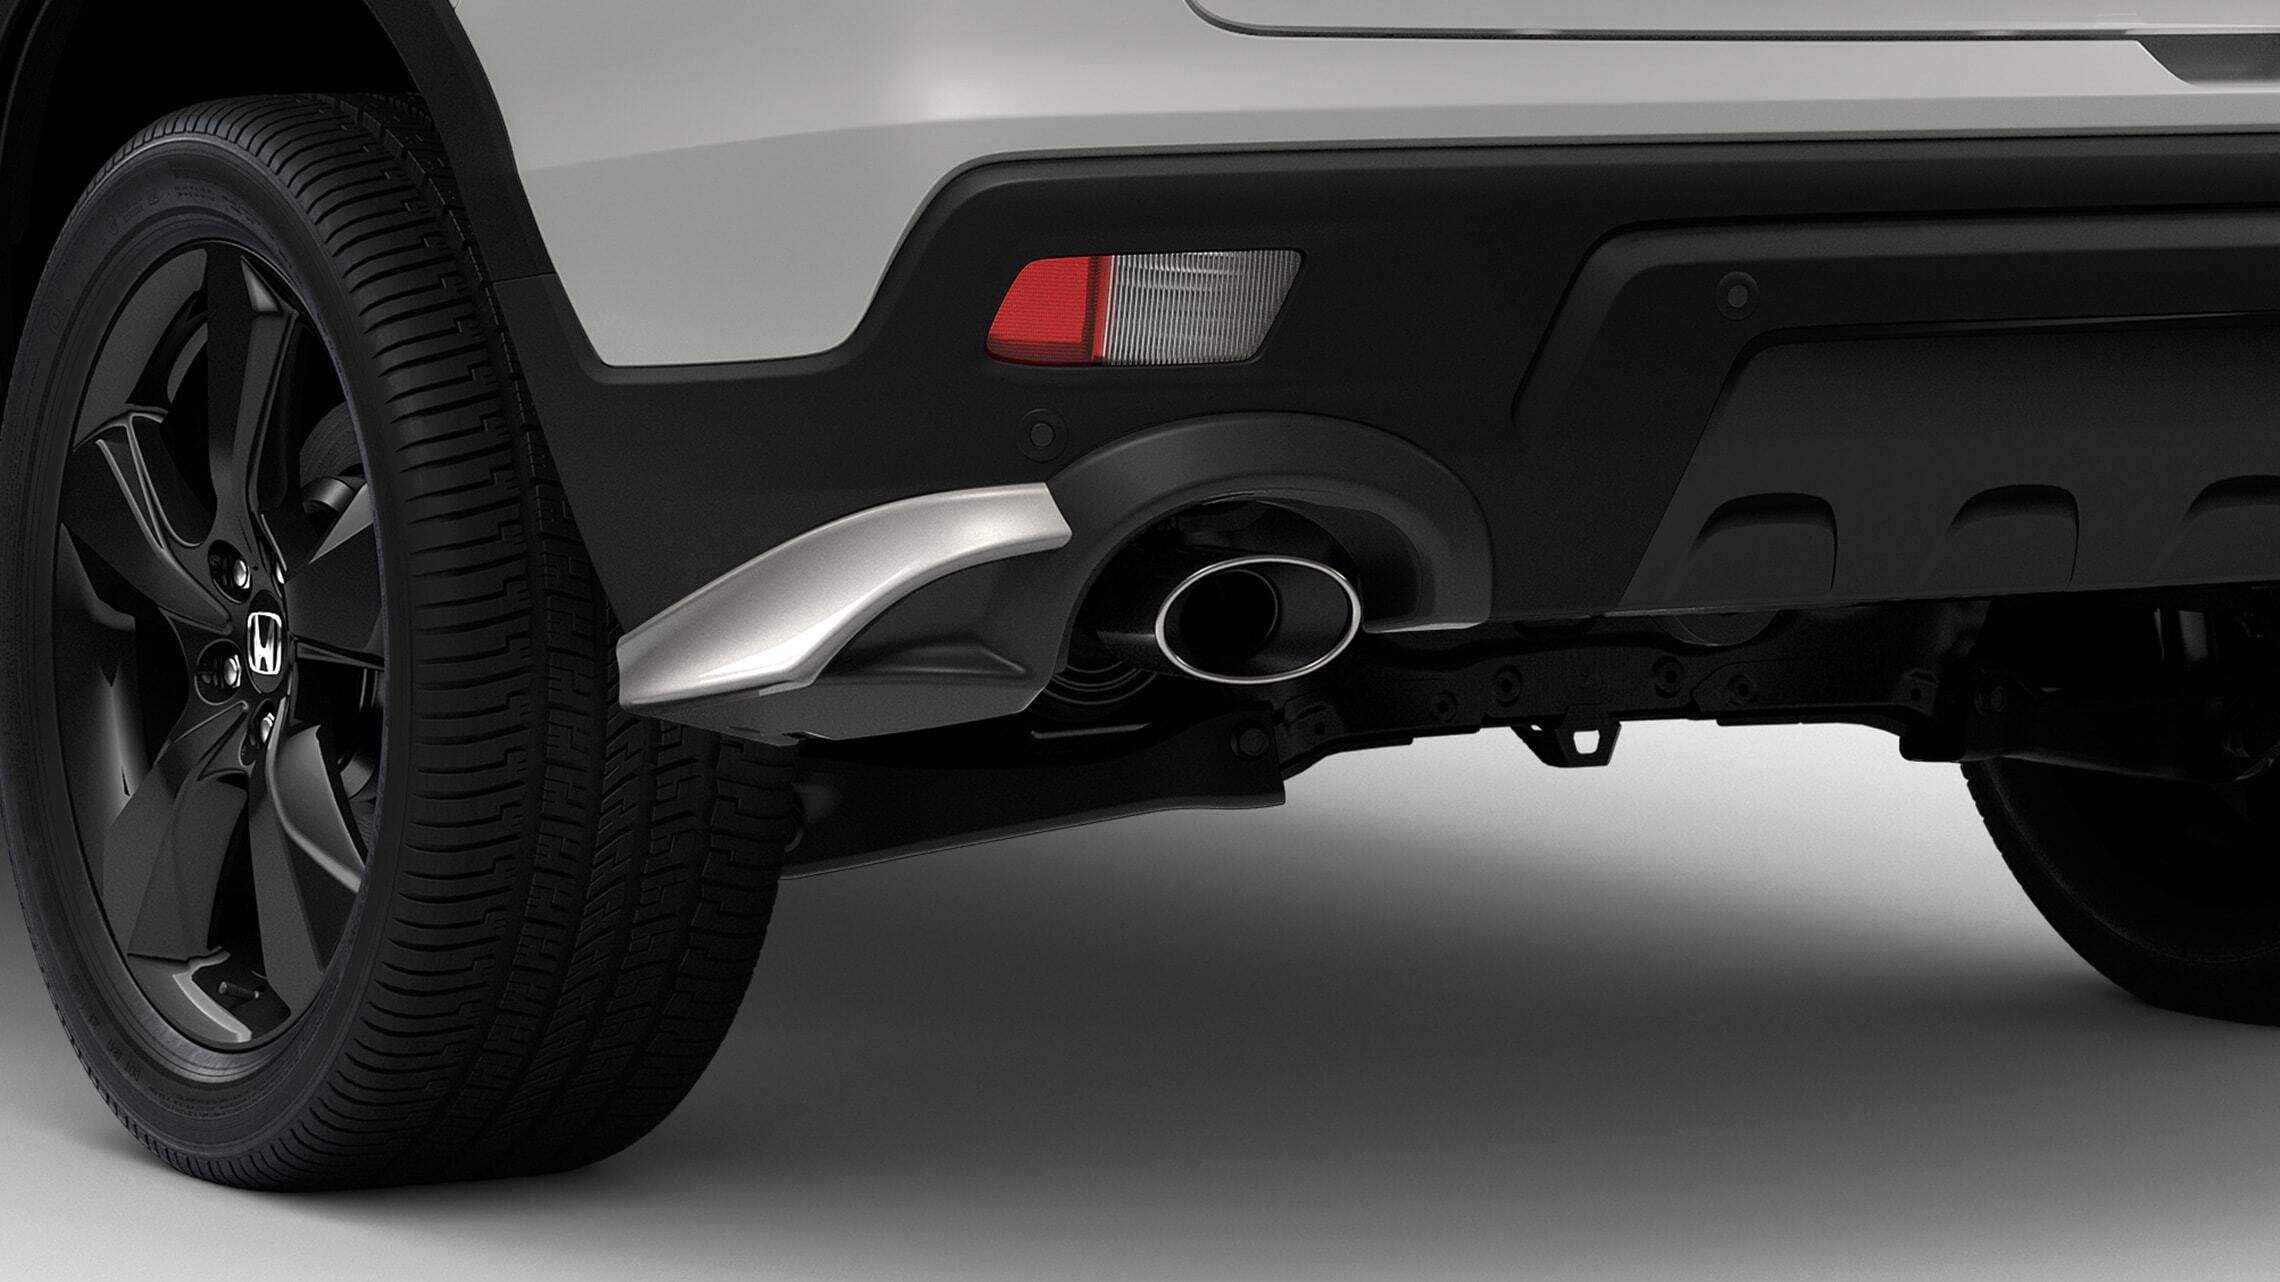 Honda Passport Accessory - Rear Underbody Spoiler